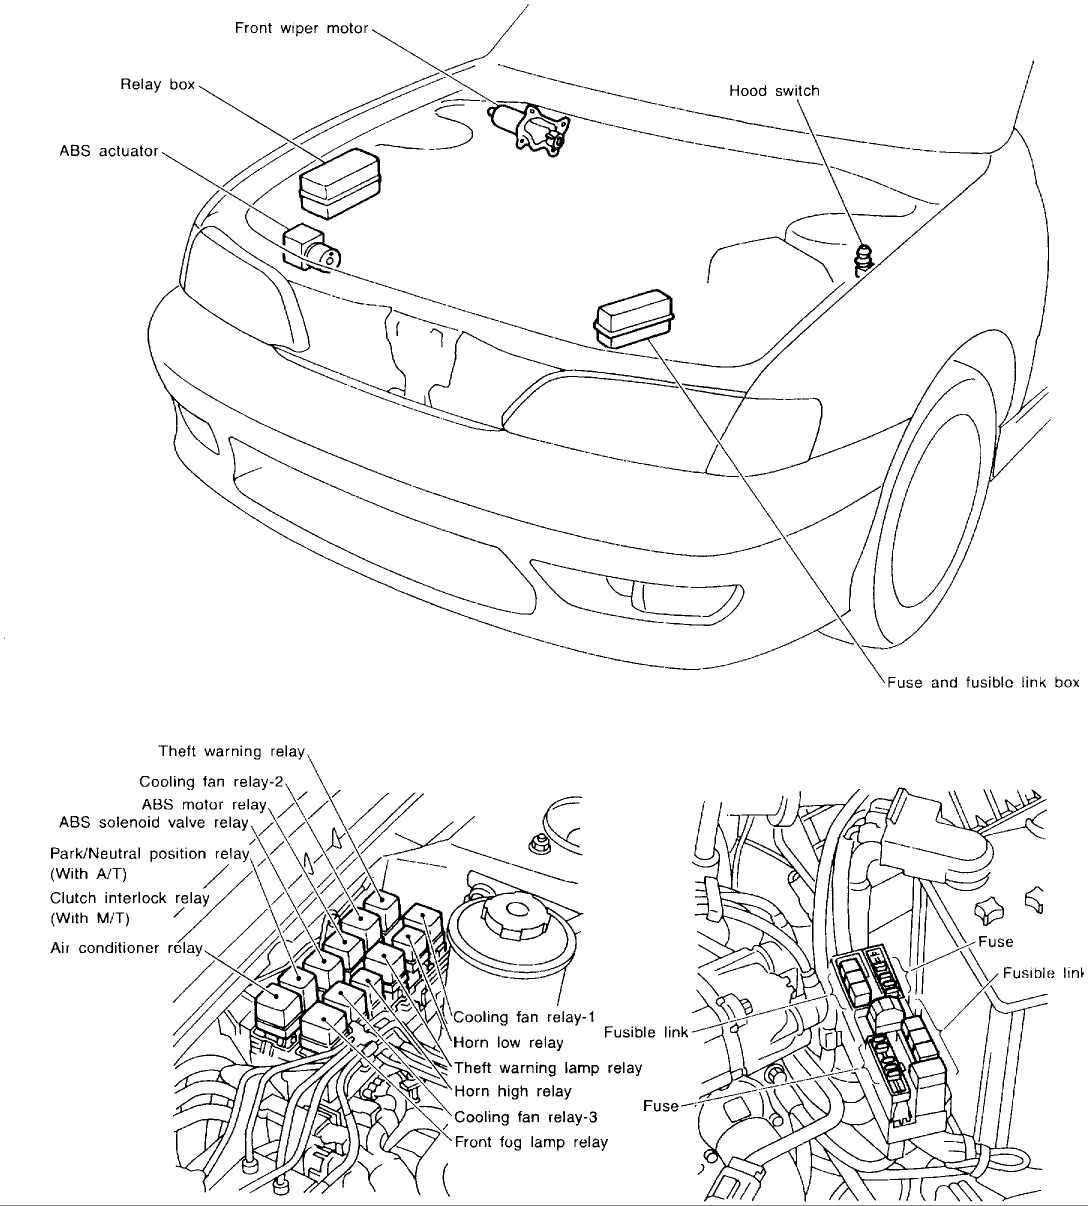 hight resolution of 1996 bmw z3 fuse box diagram trusted wiring diagrams u2022 96 ford club wagon abs